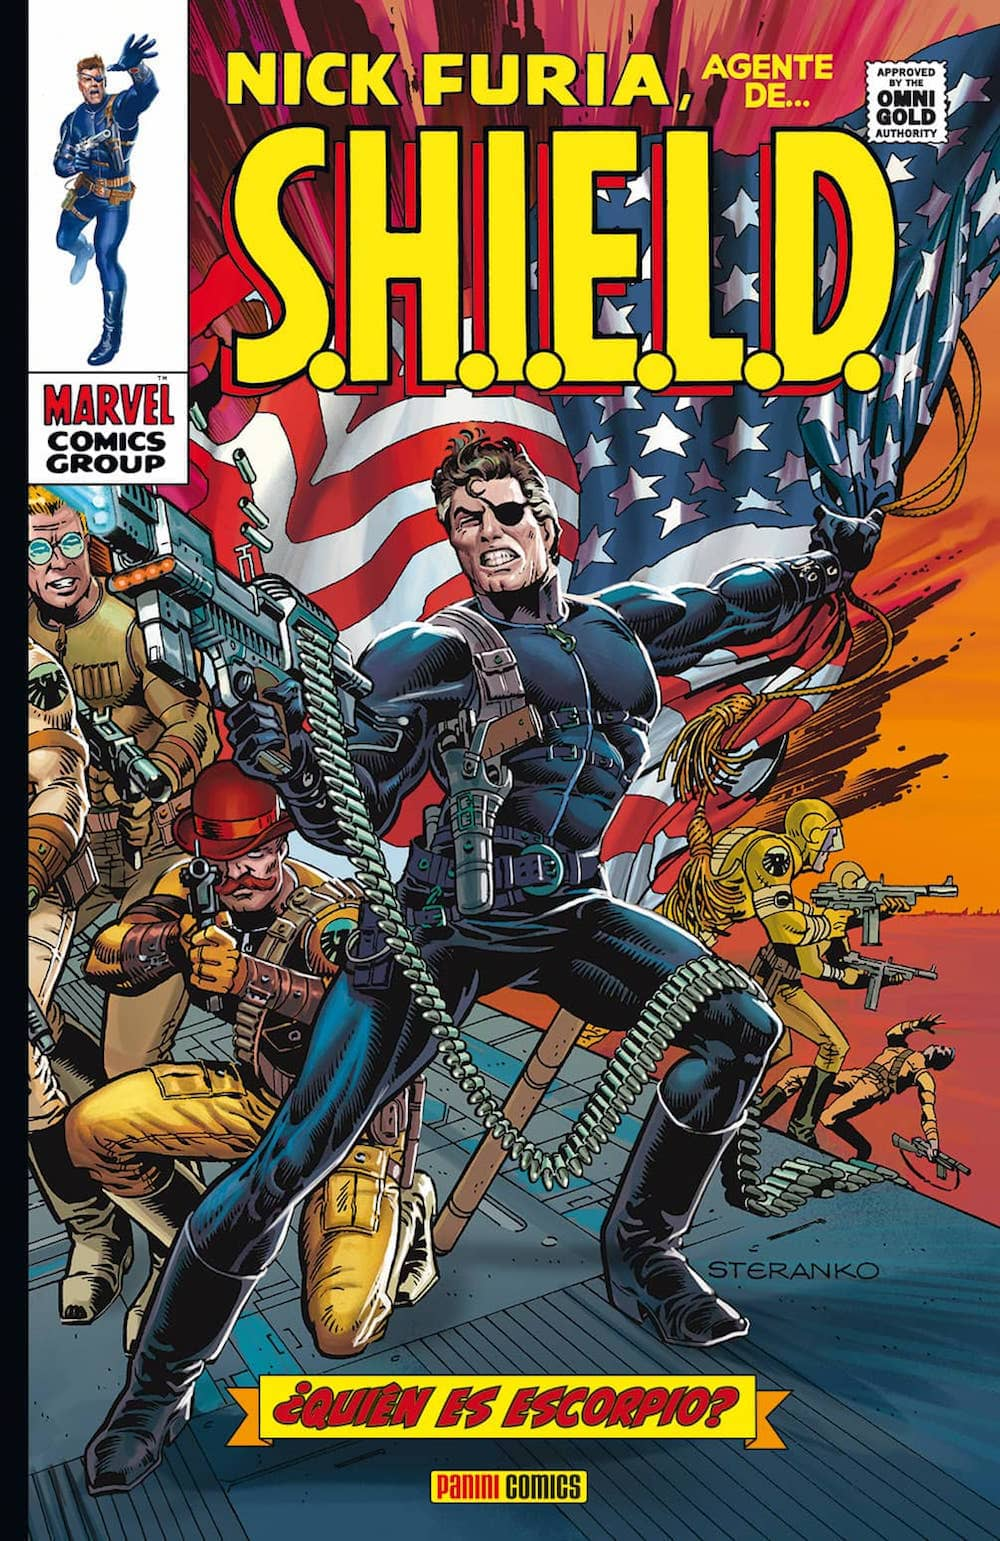 NICK FURIA. AGENTE DE SHIELD 02.    (MARVEL GOLD)